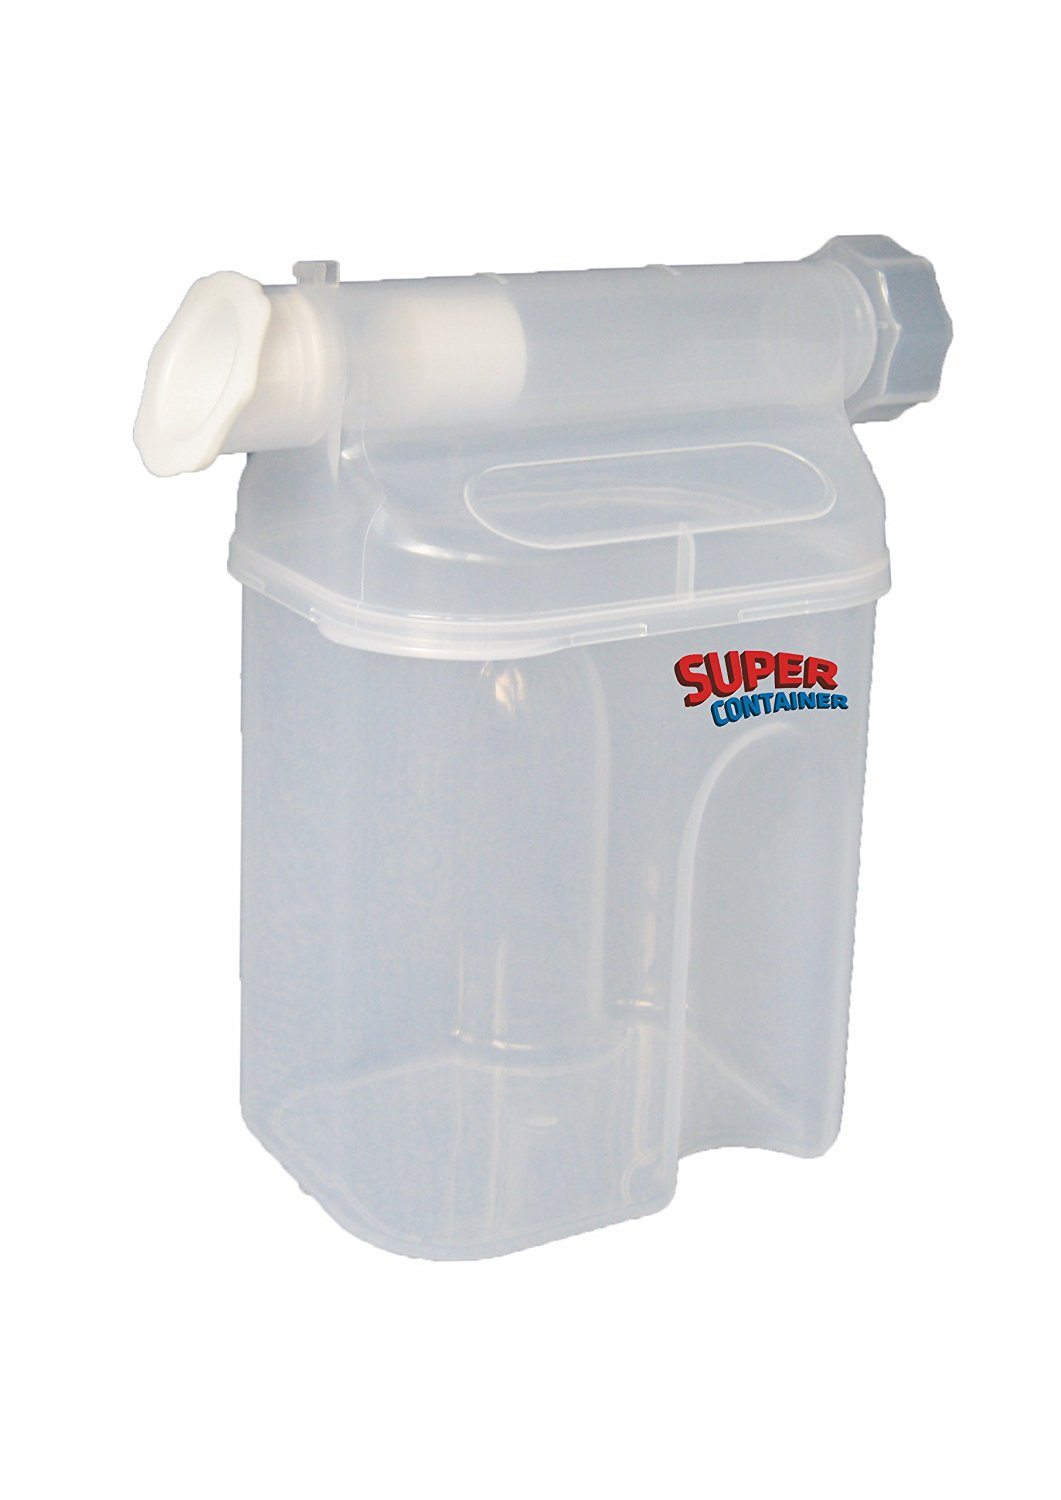 Dispenser Super Container Patented Useful for all powders and granulated products: Baby formula, cocoa, coffee, sugar, oatmeal. Keeps food fresh. compact, convenient, easy-­to-­use.